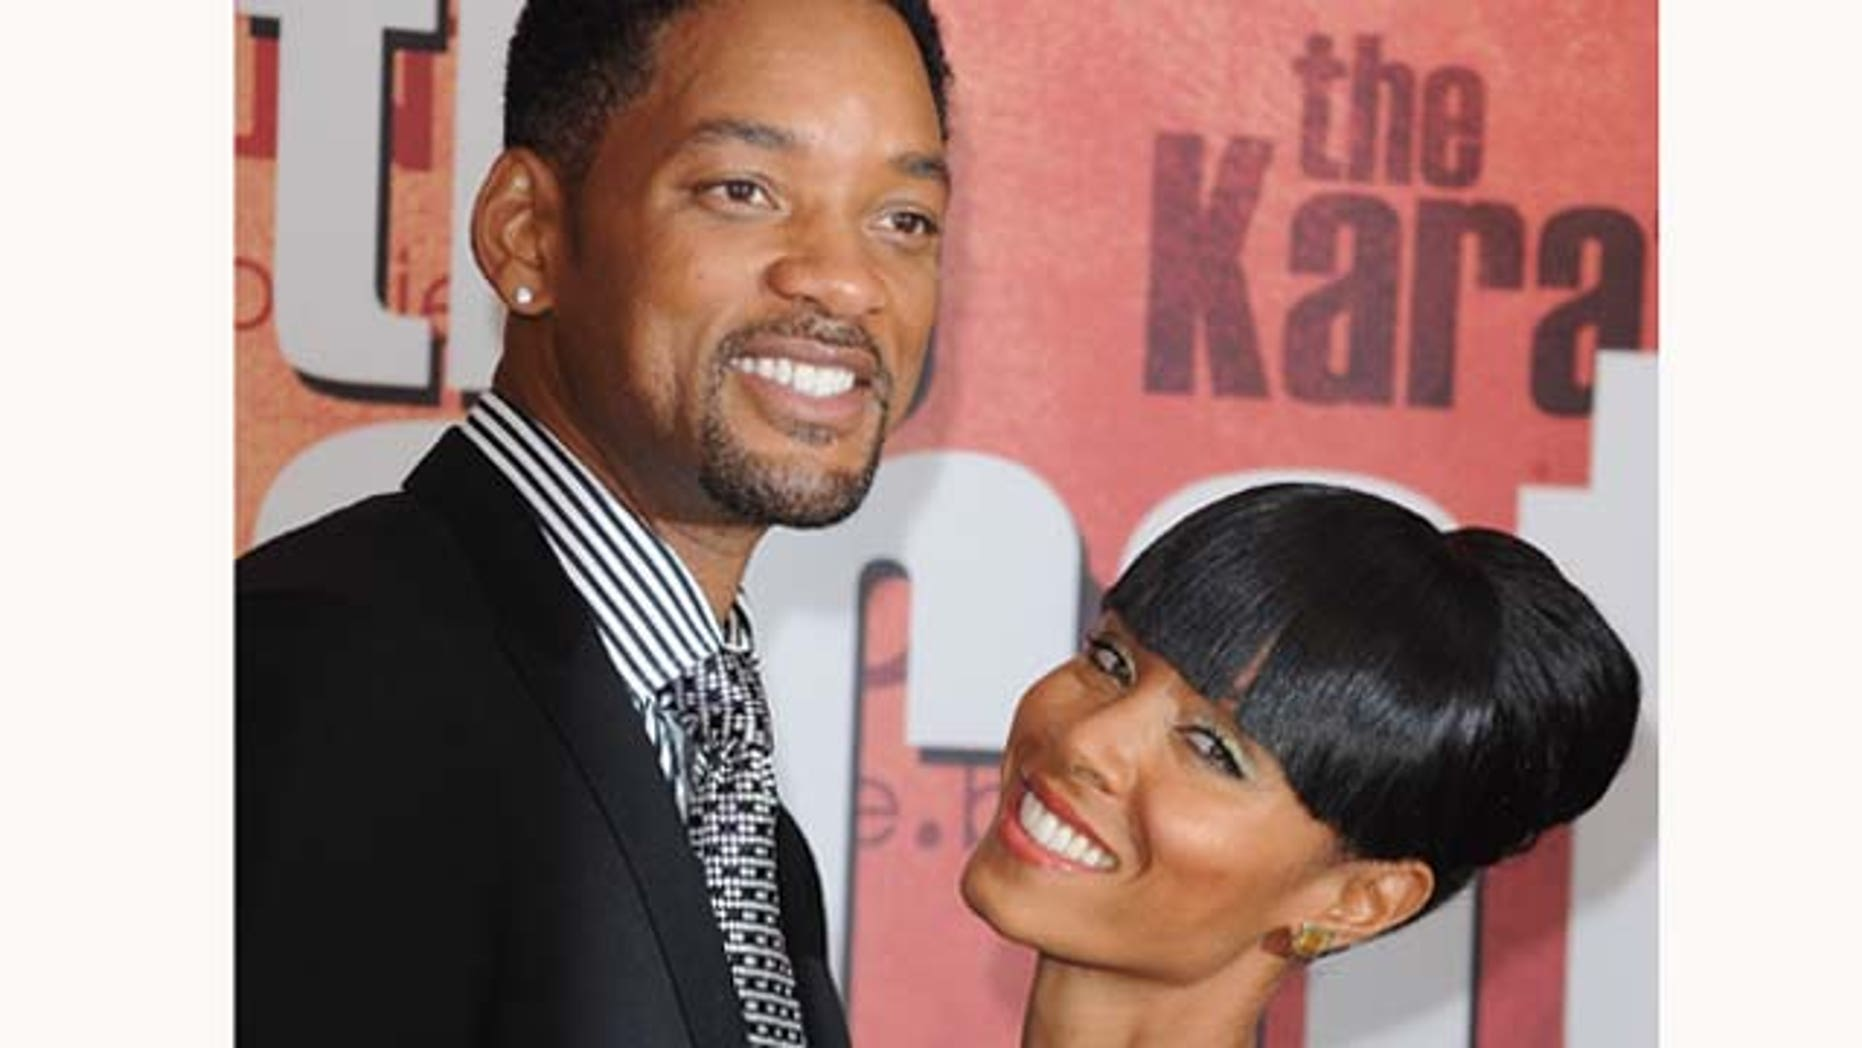 July 25, 2010: Actors Will Smith (L) and wife Jada Pinkett Smith (R) attend 'The Karate Kid' film premiere at Le Grand Rex in Paris, France.